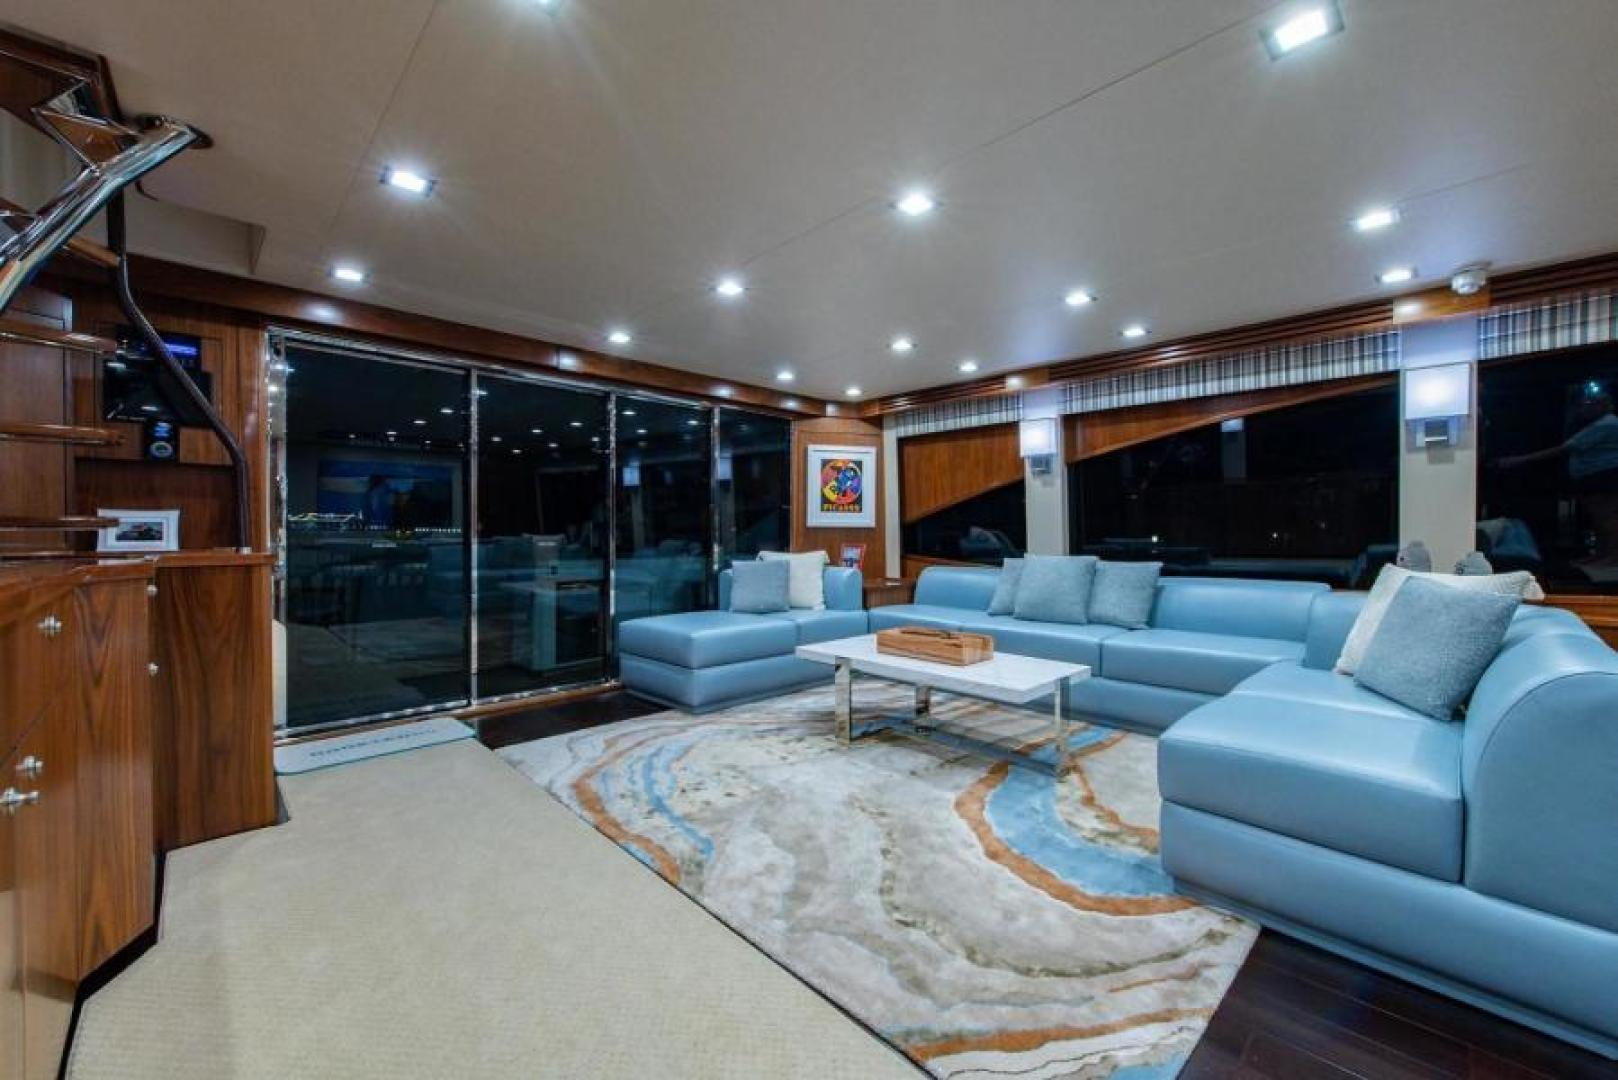 Viking-Motoryacht Enclosed Flybridge 2018-BOOK ENDS Fort Lauderdale-Florida-United States-Salon-1470571 | Thumbnail